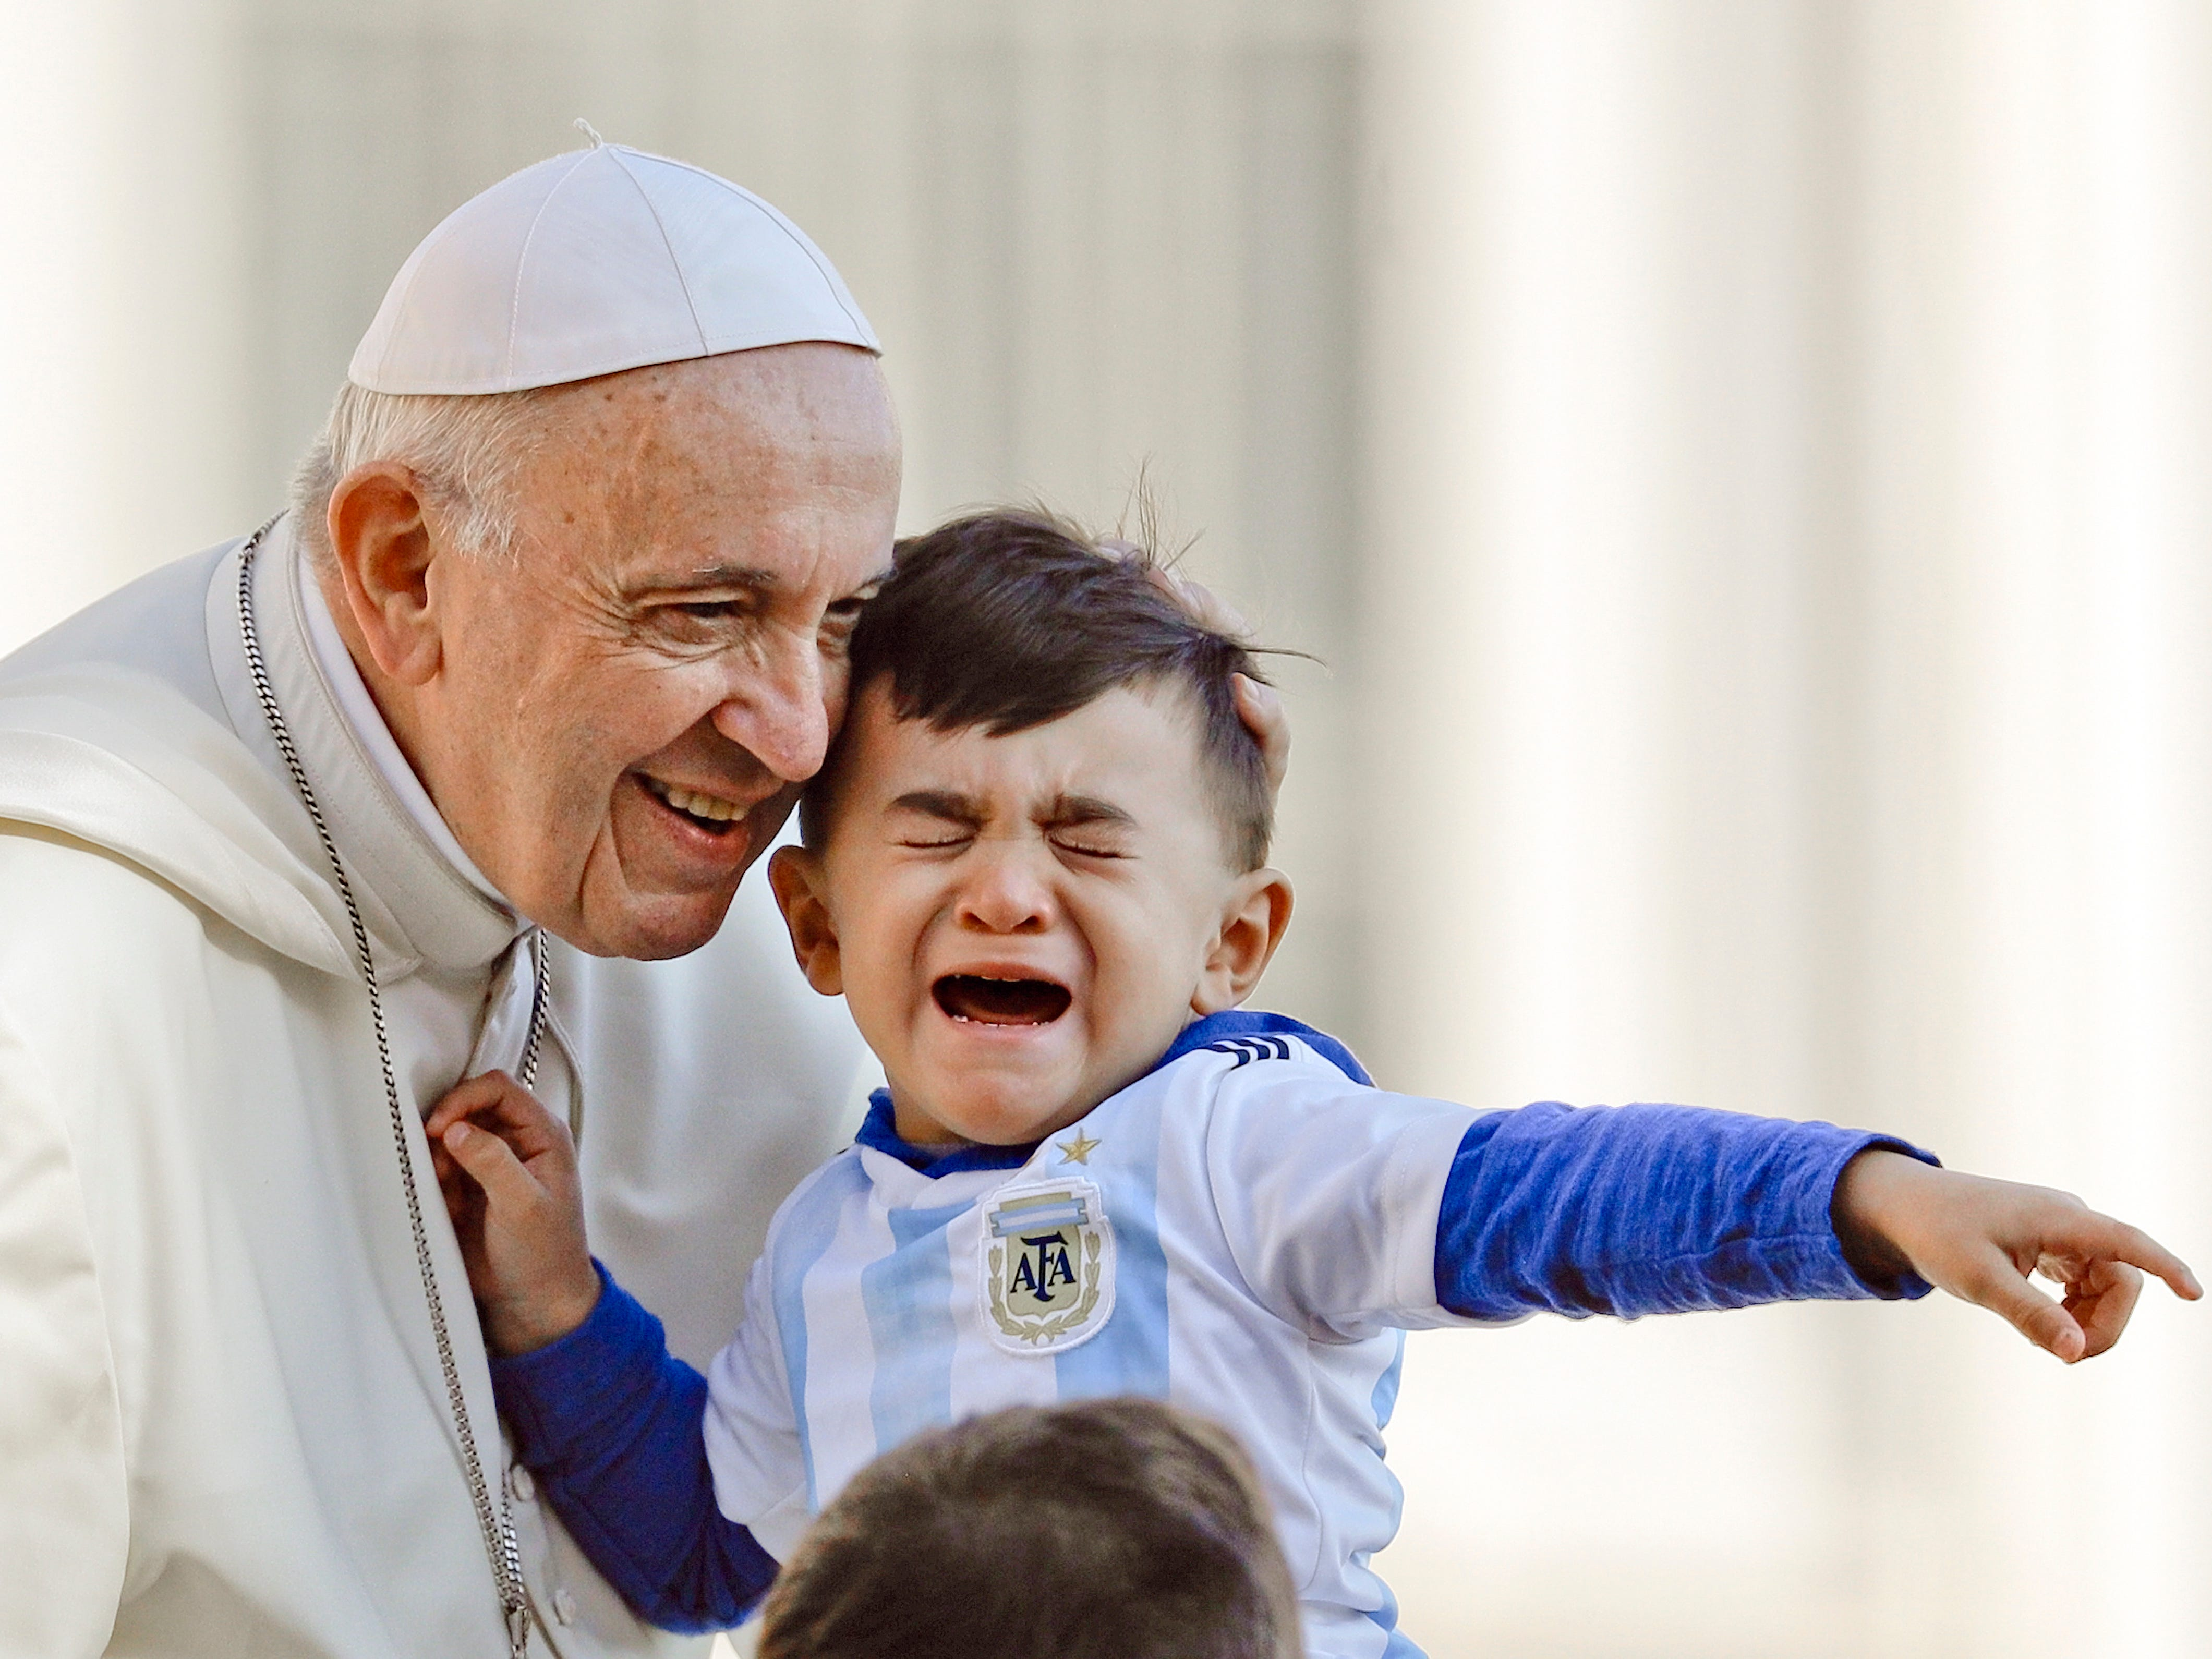 Pope Francis caresses a child as he arrives on his popemobile in St.Peter's Square for his weekly general audience at the Vatican, Wednesday, Oct. 10, 2018.